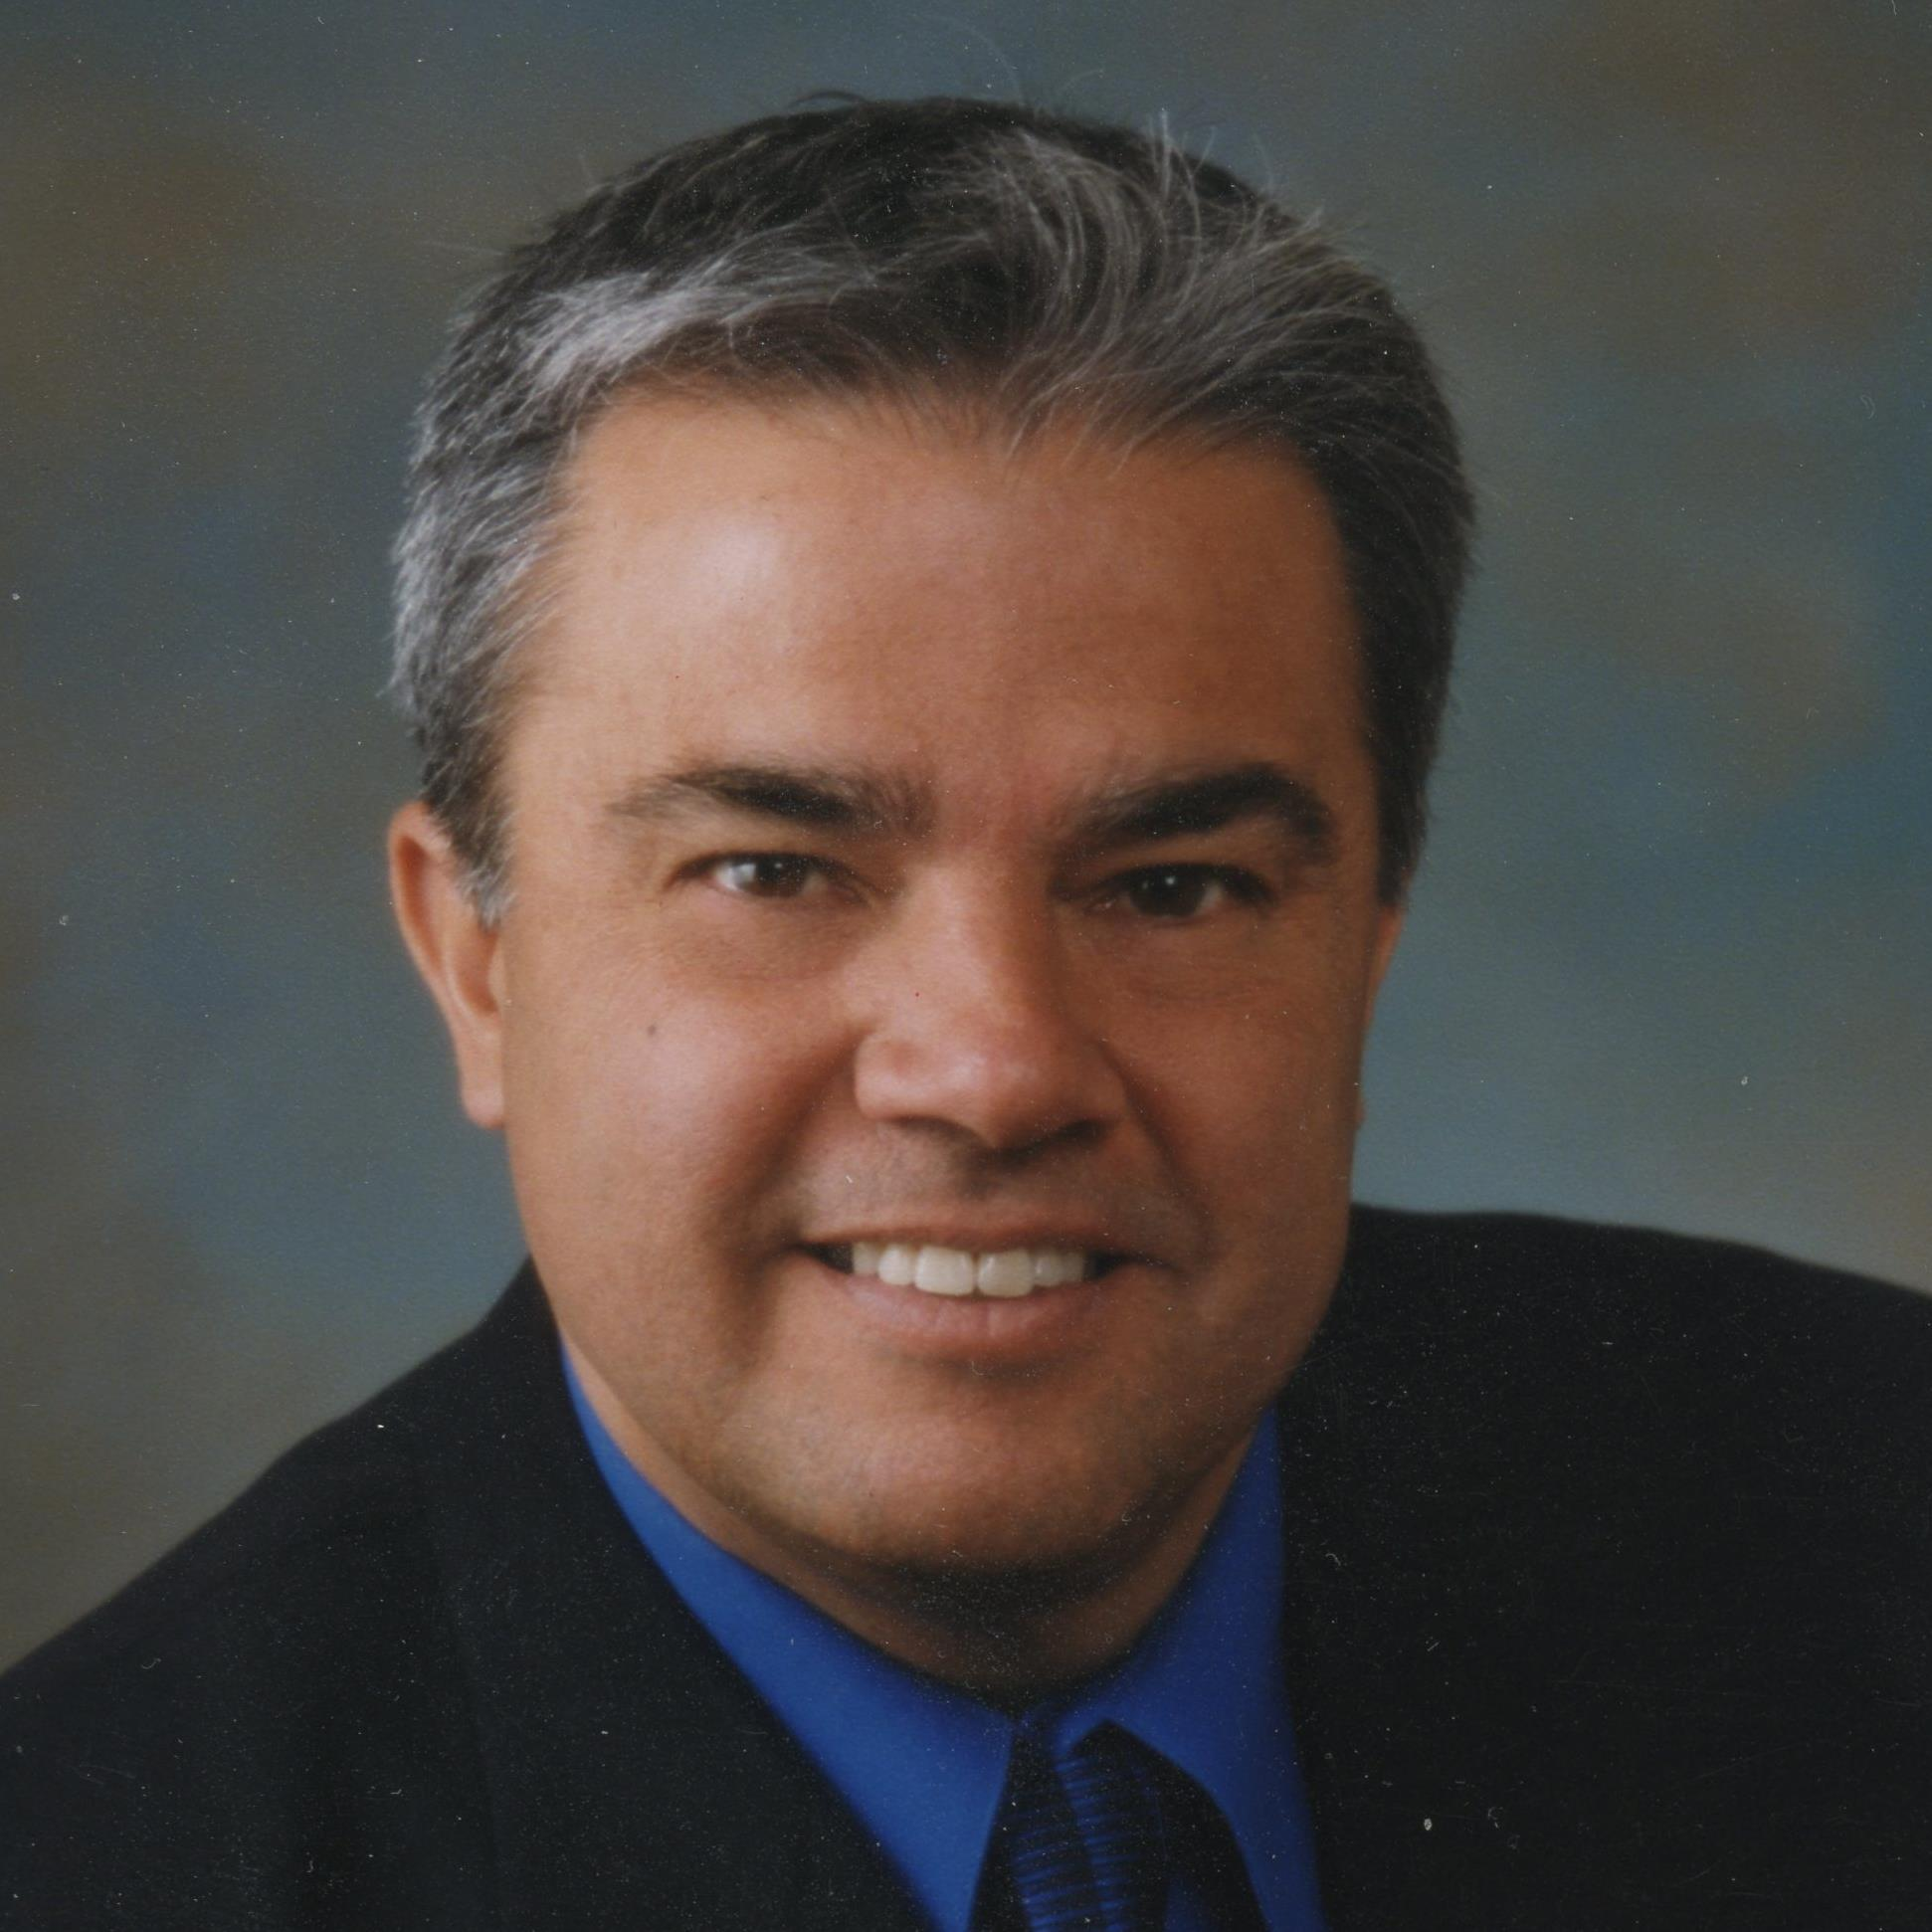 Ronnie De La Cruz headshot.jpg